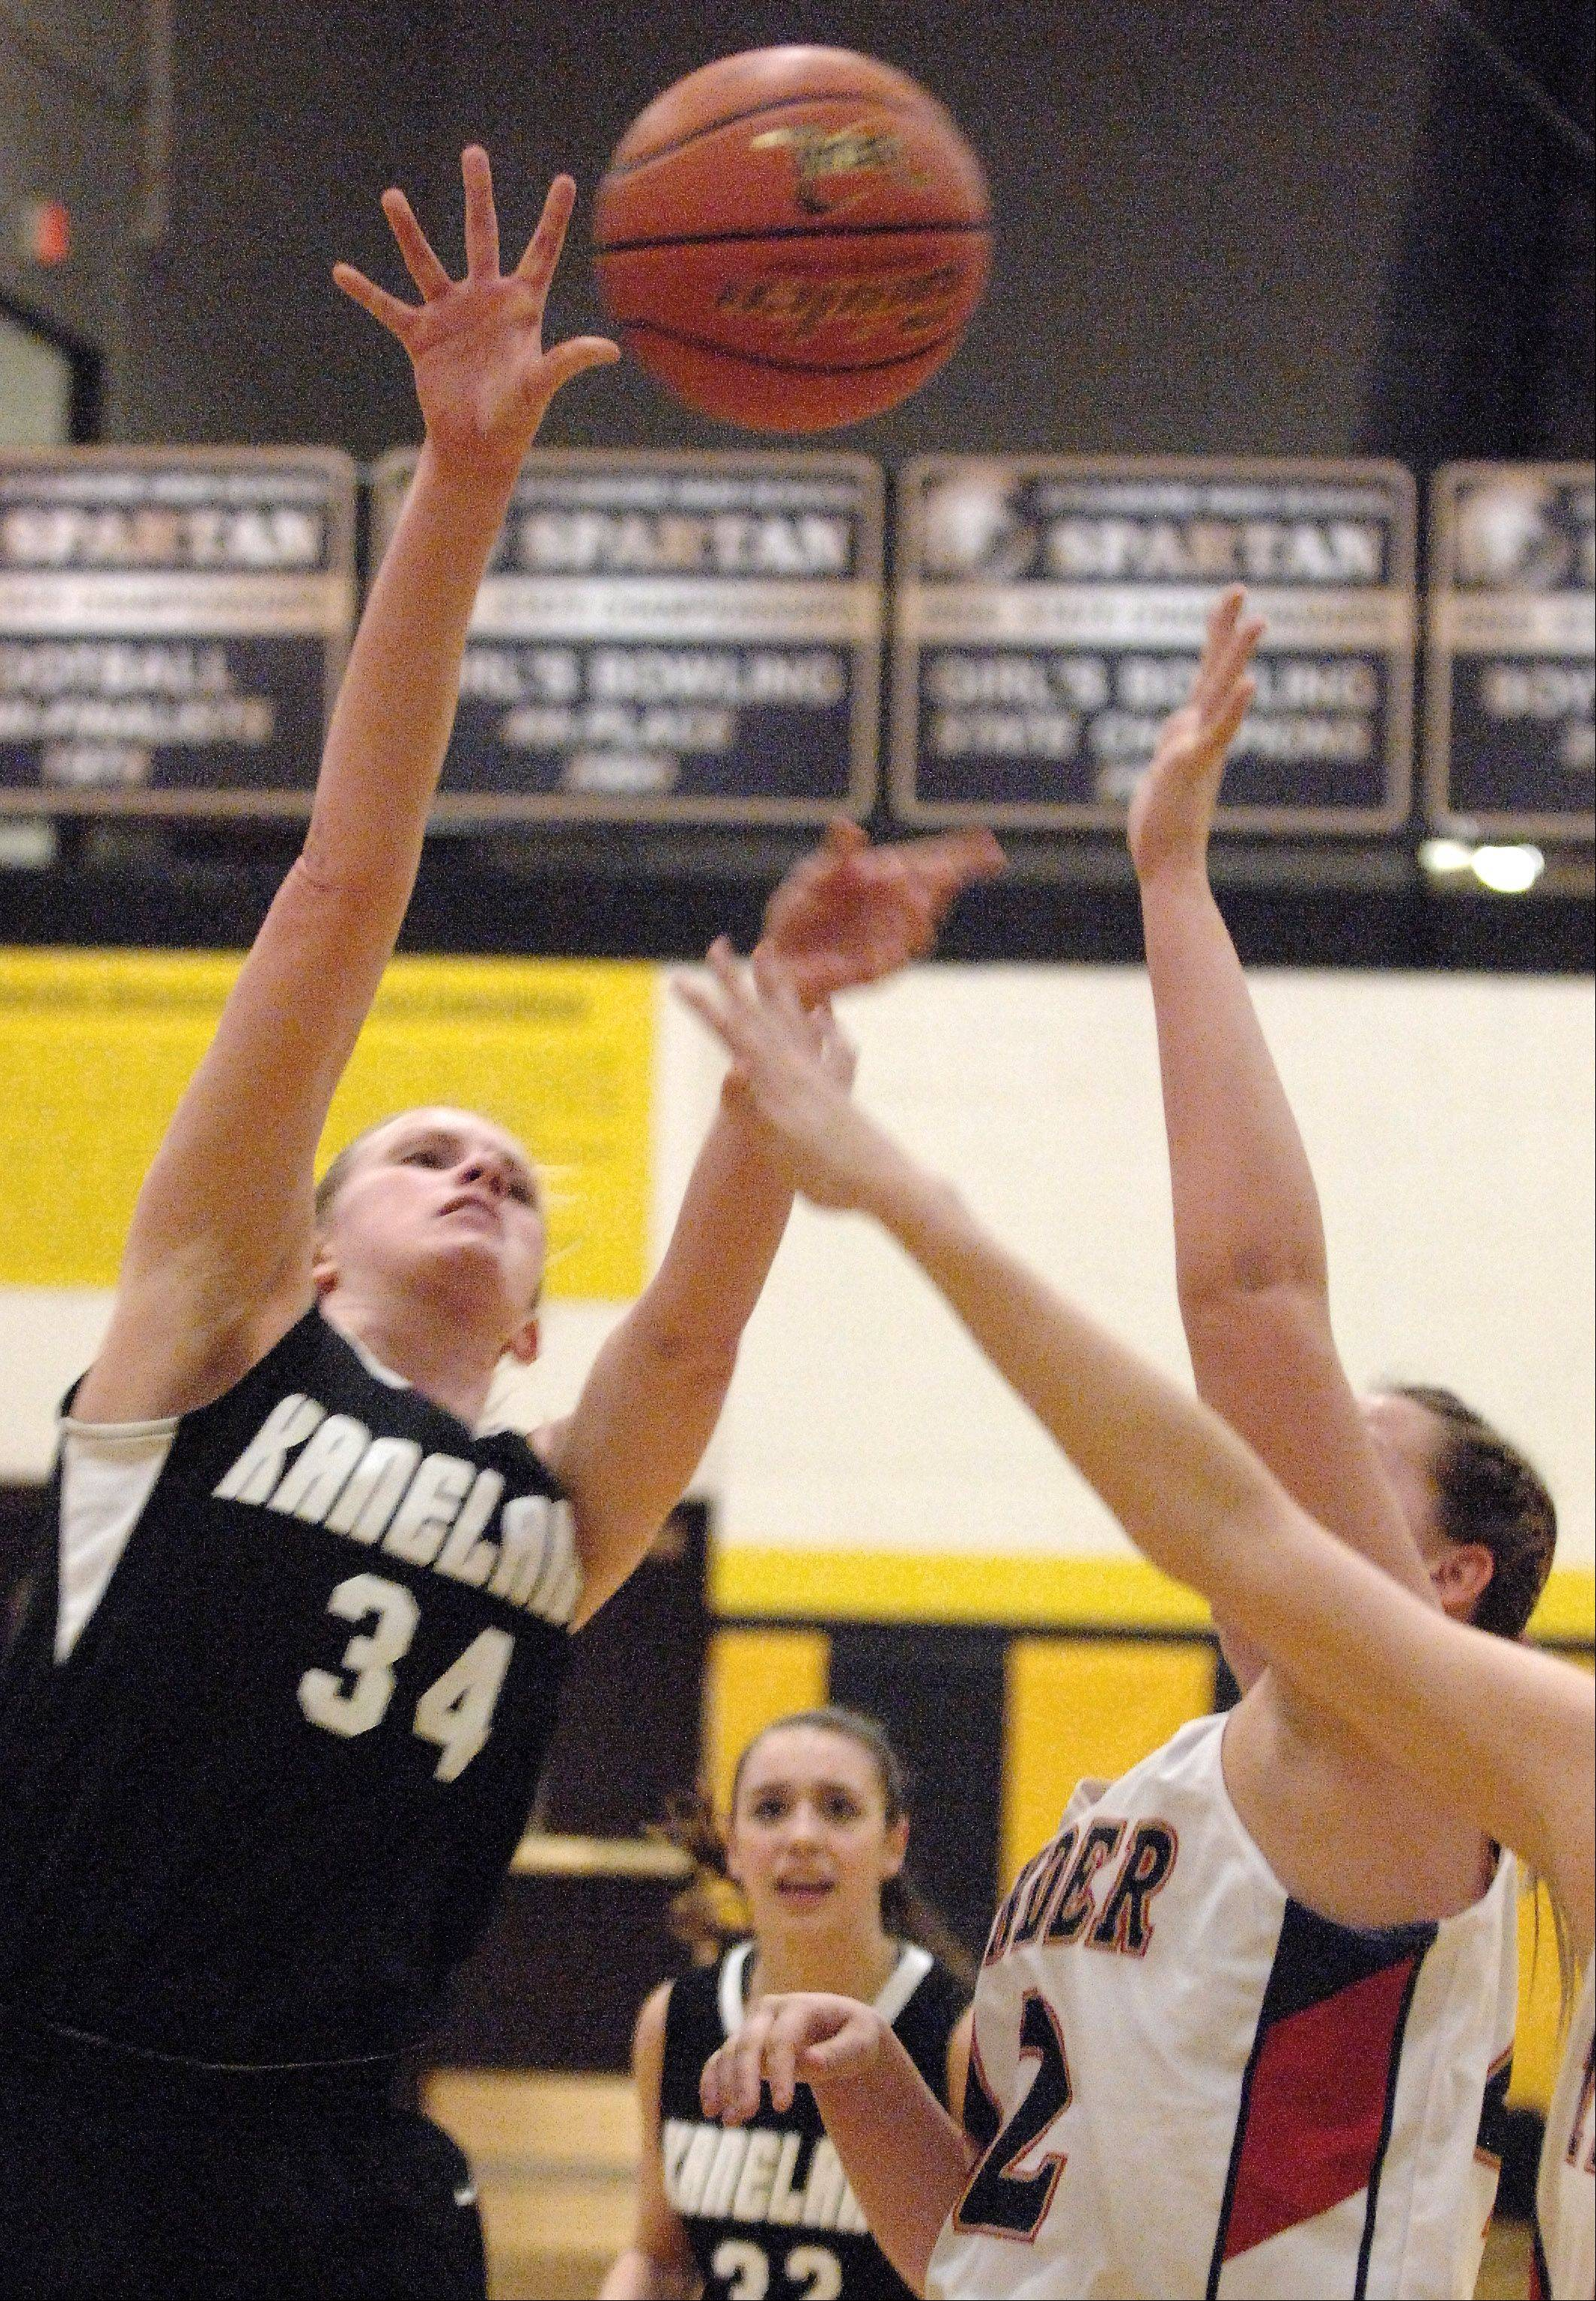 Kelly Evers had 11 points and 8 rebounds in her final game for Kaneland.